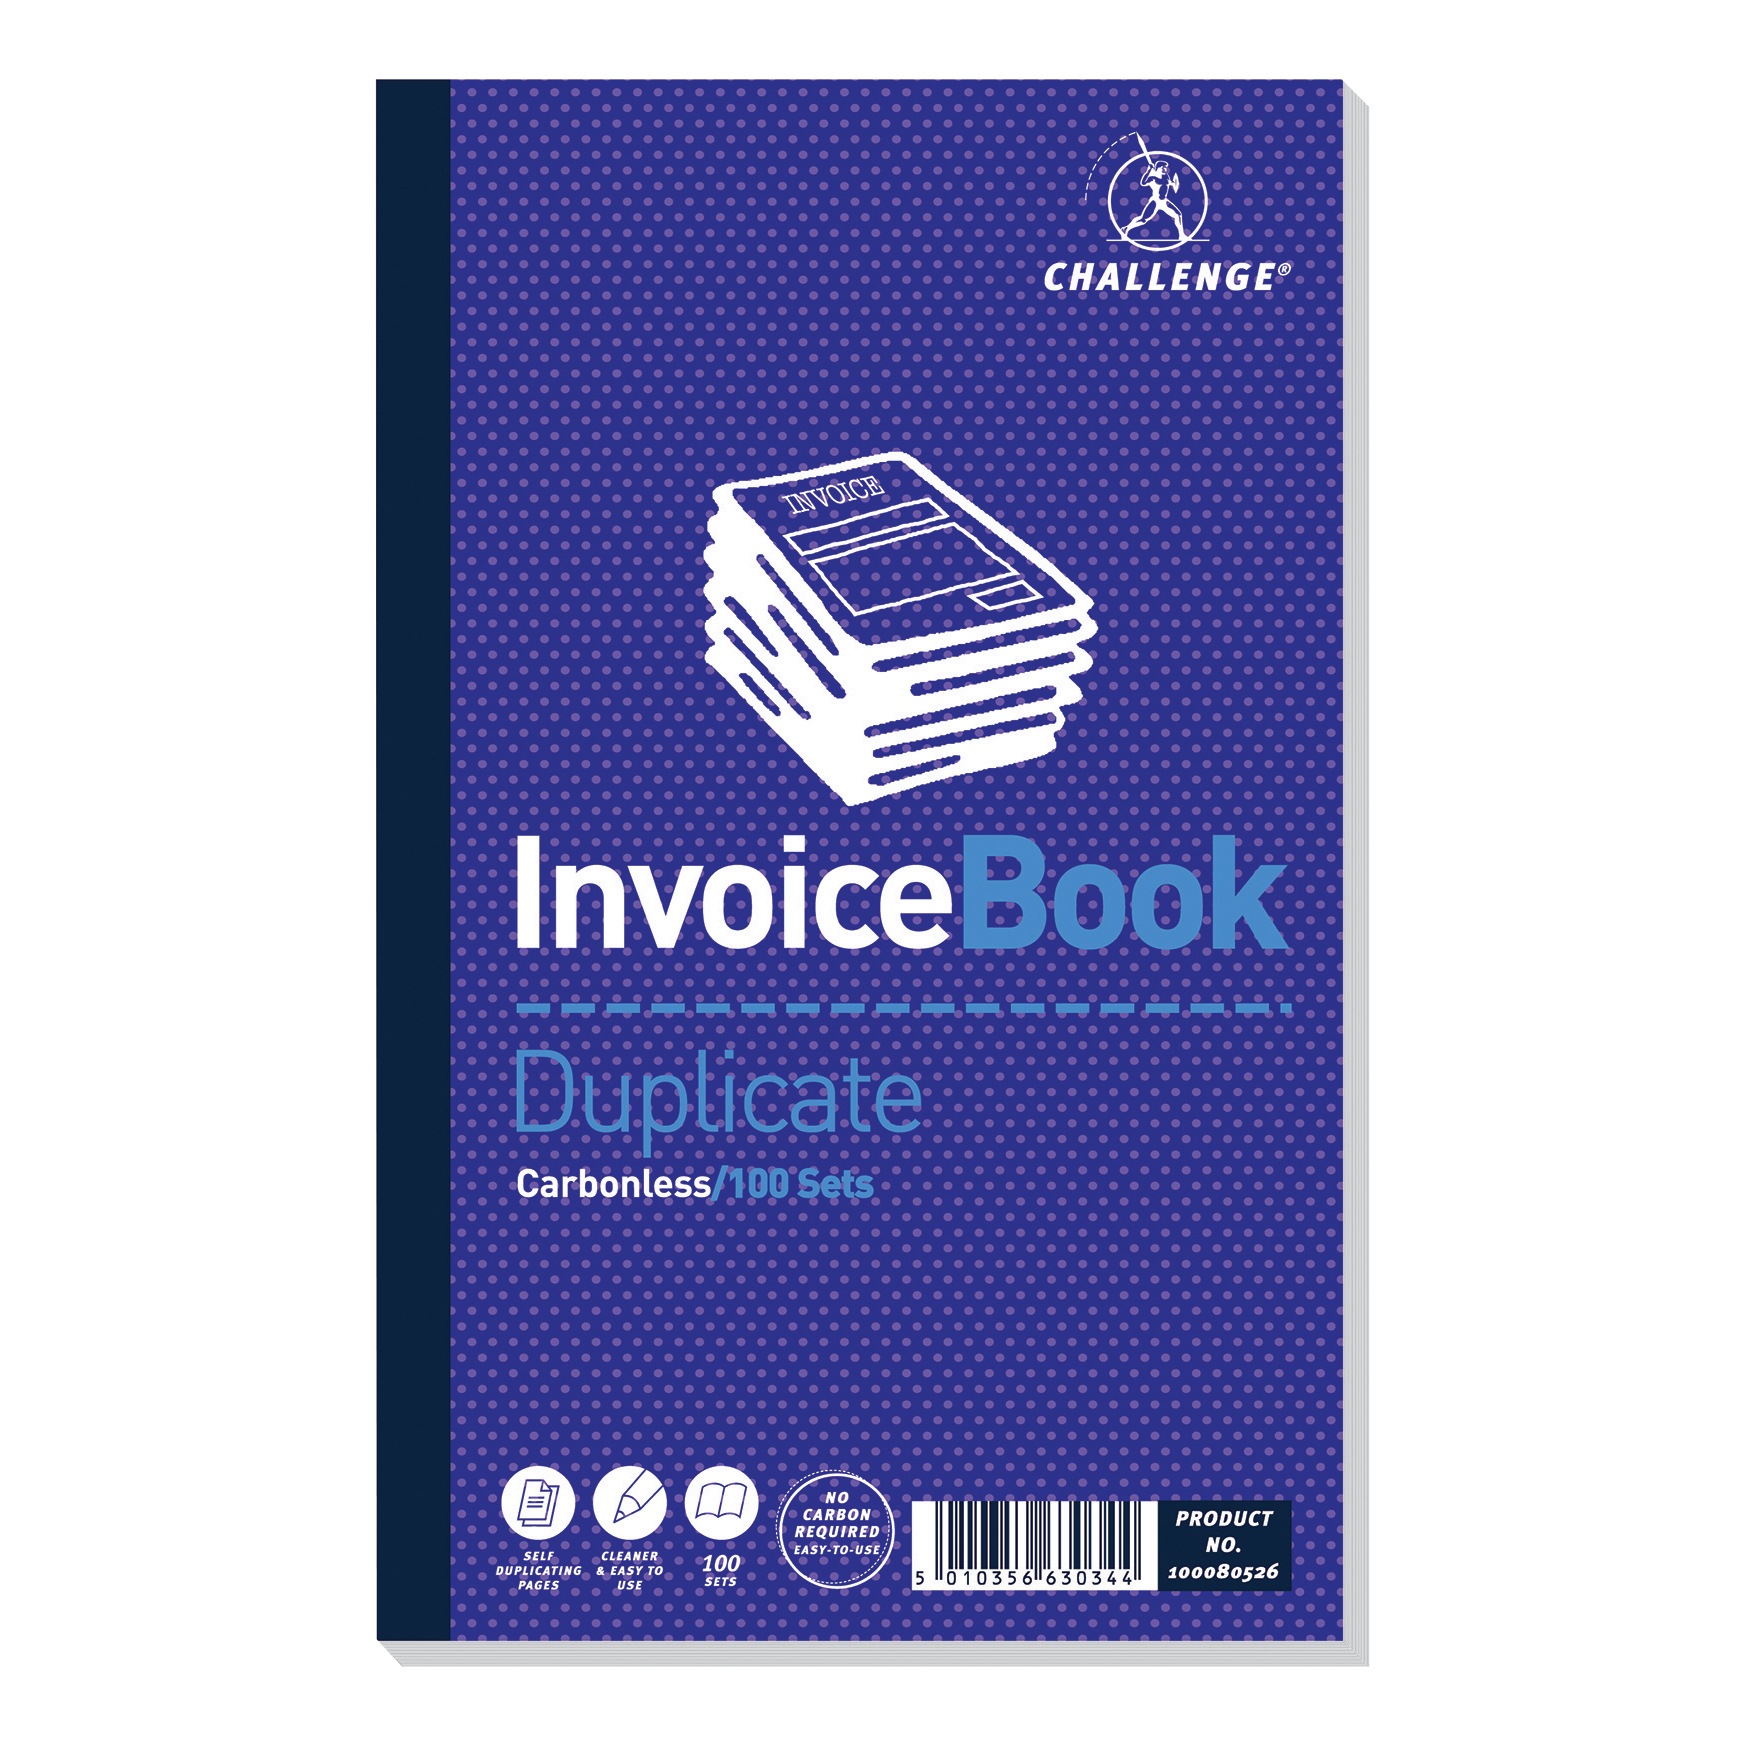 Challenge Duplicate Book Carbonless Invoice without VAT/tax 100 Sets 210x130mm Ref 100080526 Pack 5